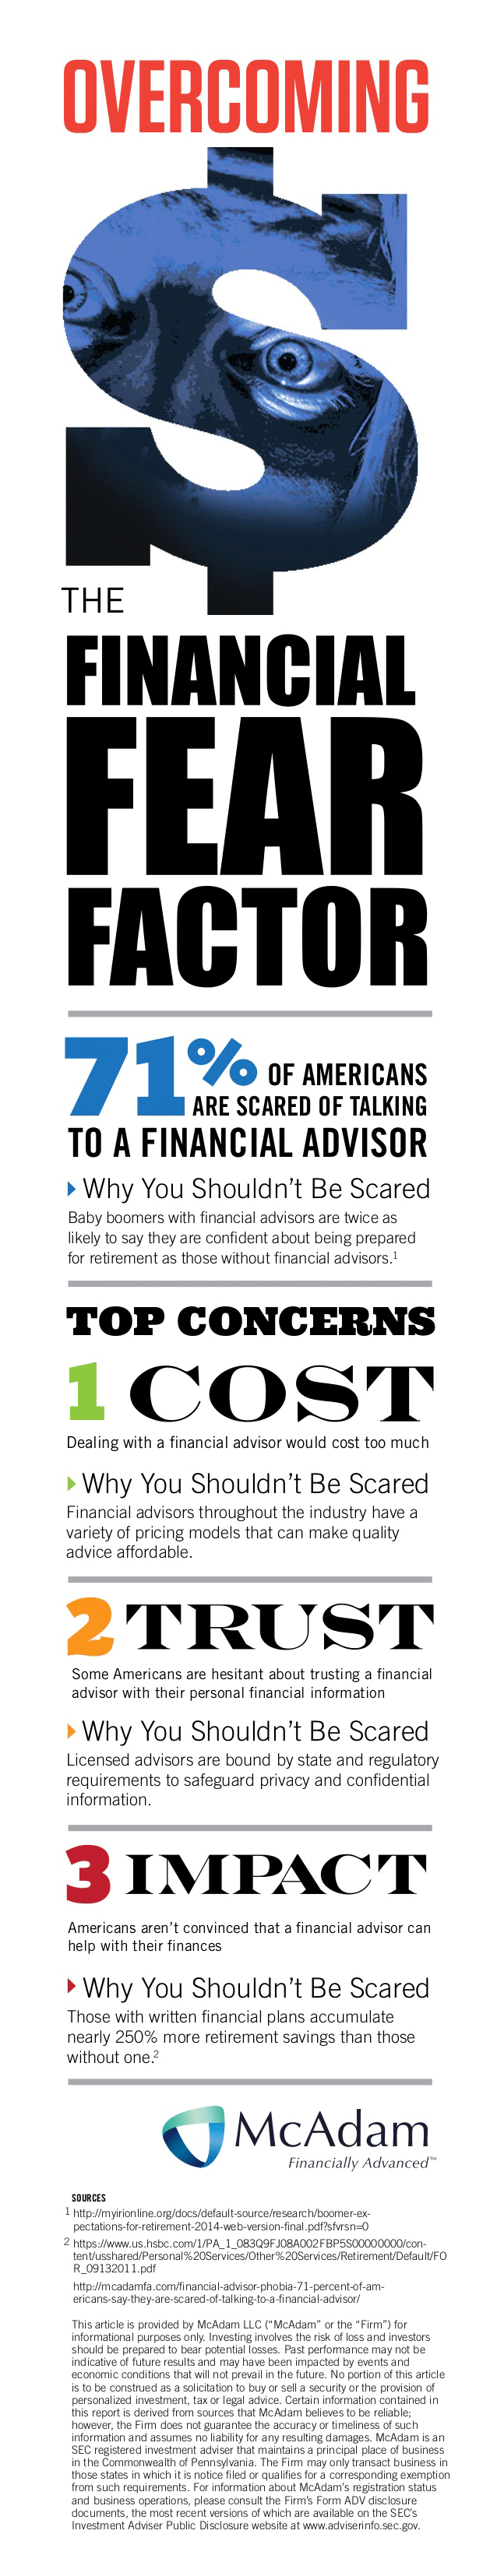 infographic---financial-fear